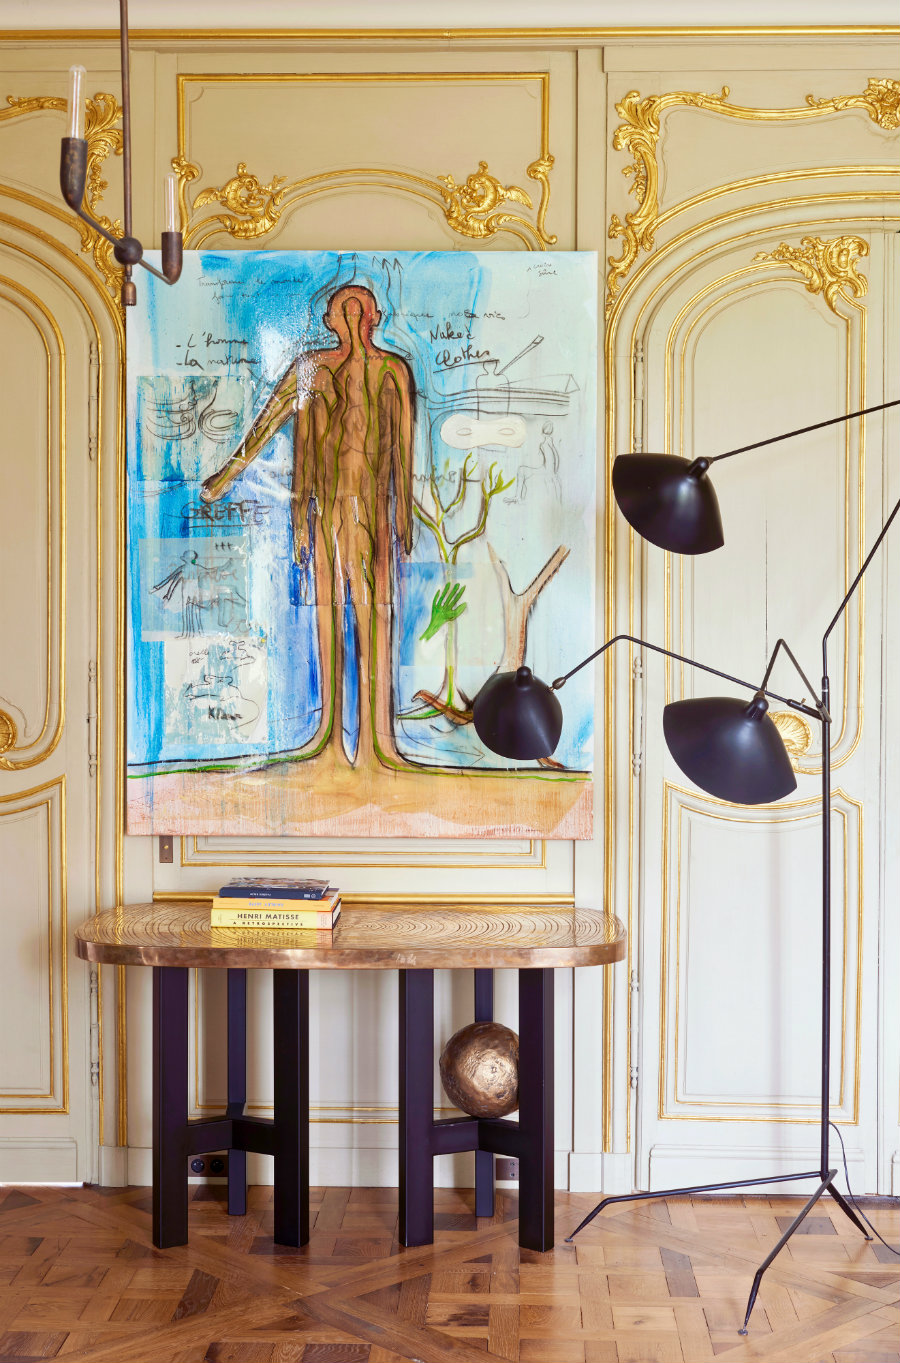 Didier Benderli Transforms A 16th Century Chateau into a Luxury Home luxury home Didier Benderli Transforms A 16th Century Chateau into a Luxury Home Didier Benderli 1